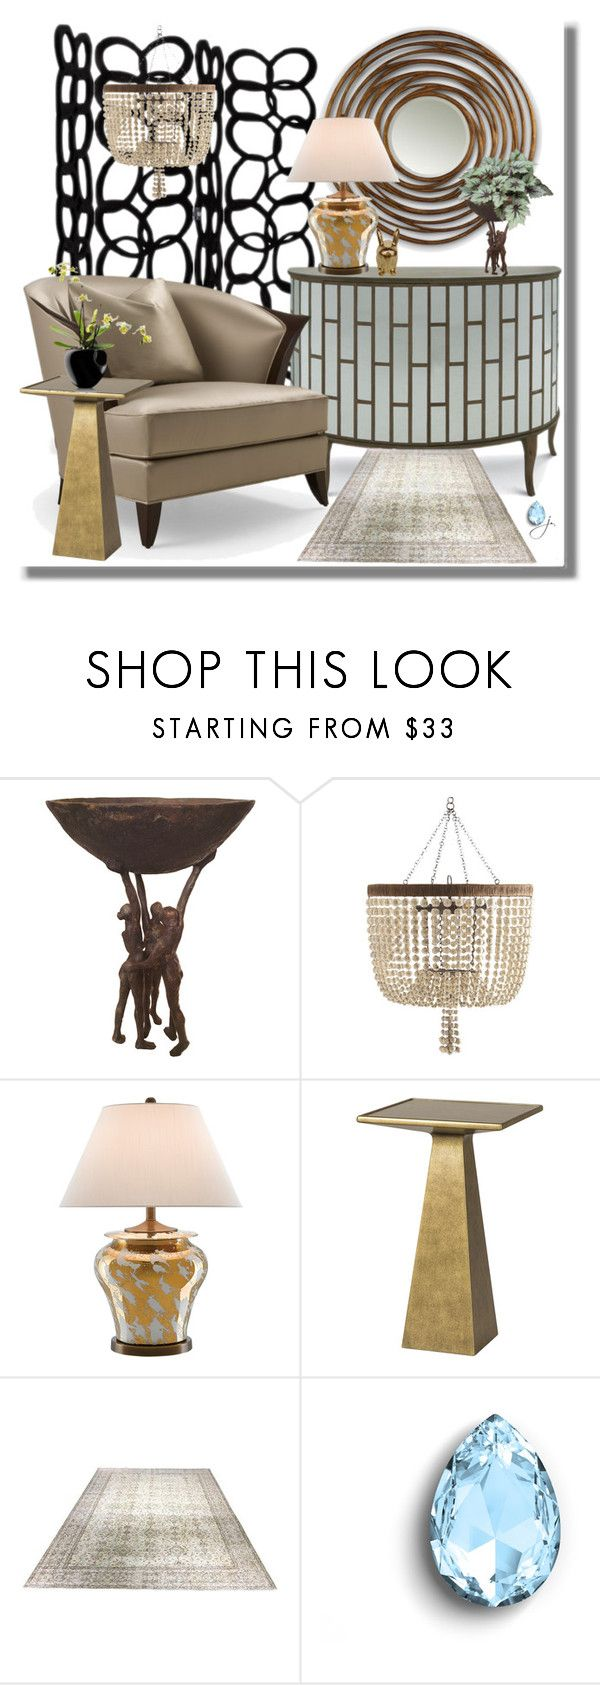 """""""The Dorchester"""" by jacque-reid ❤ liked on Polyvore featuring interior, interiors, interior design, home, home decor, interior decorating, Christopher Guy, Oly, Swarovski Crystallized and Eva Solo"""